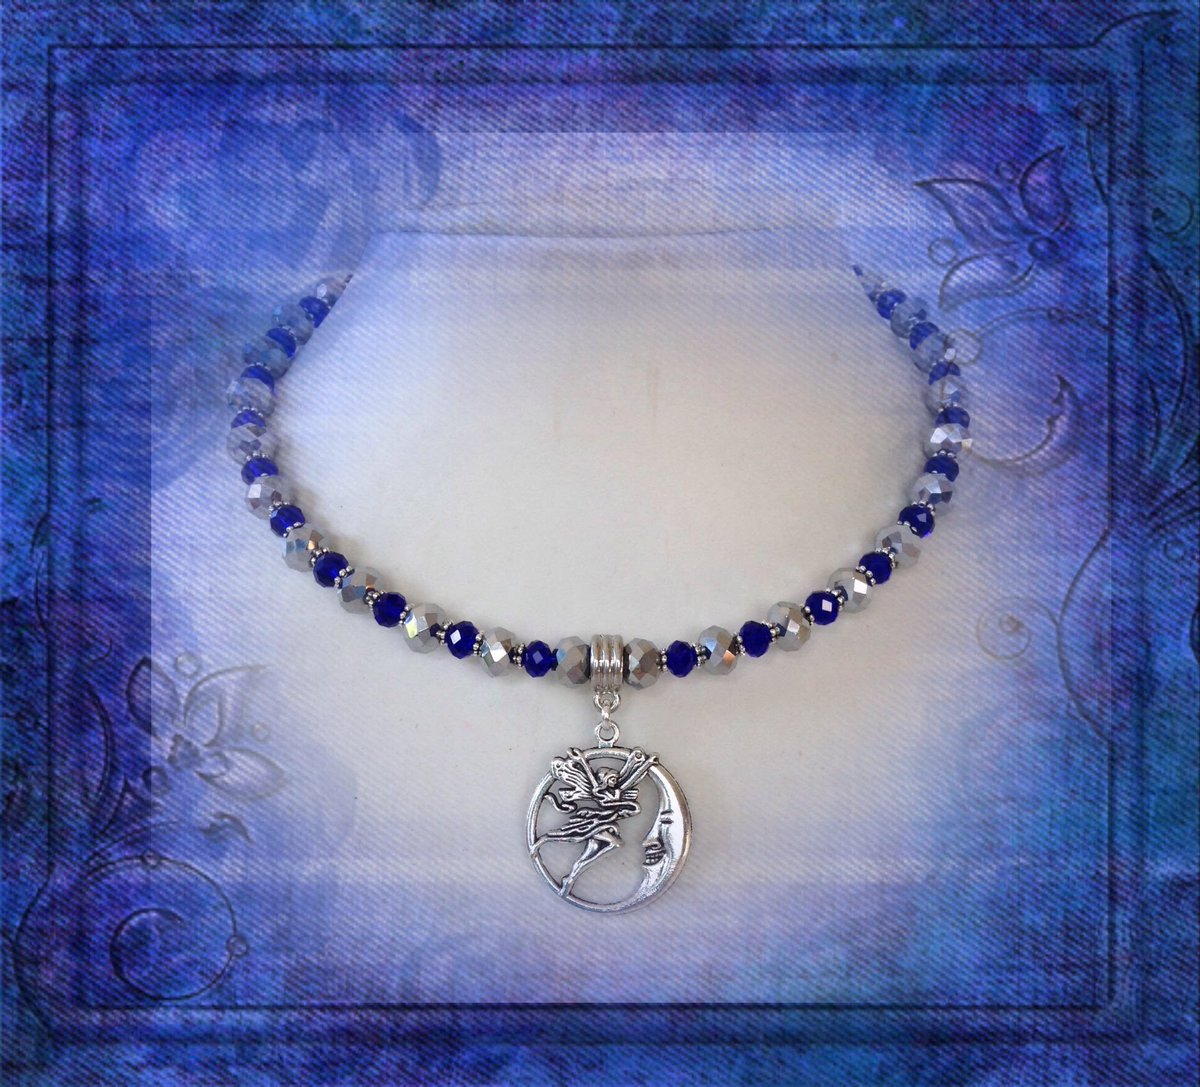 Fairy Moon Wiccan inspired necklace, shorter length, sits on the collar bone, adjustable, extension chain, OOAK, silver, cobalt blue, #pirateswag #ooakjewellery #etsy #facebook #wiccannecklace  https:// etsy.me/2LhO5u7  &nbsp;  <br>http://pic.twitter.com/Gk66SBcBc8